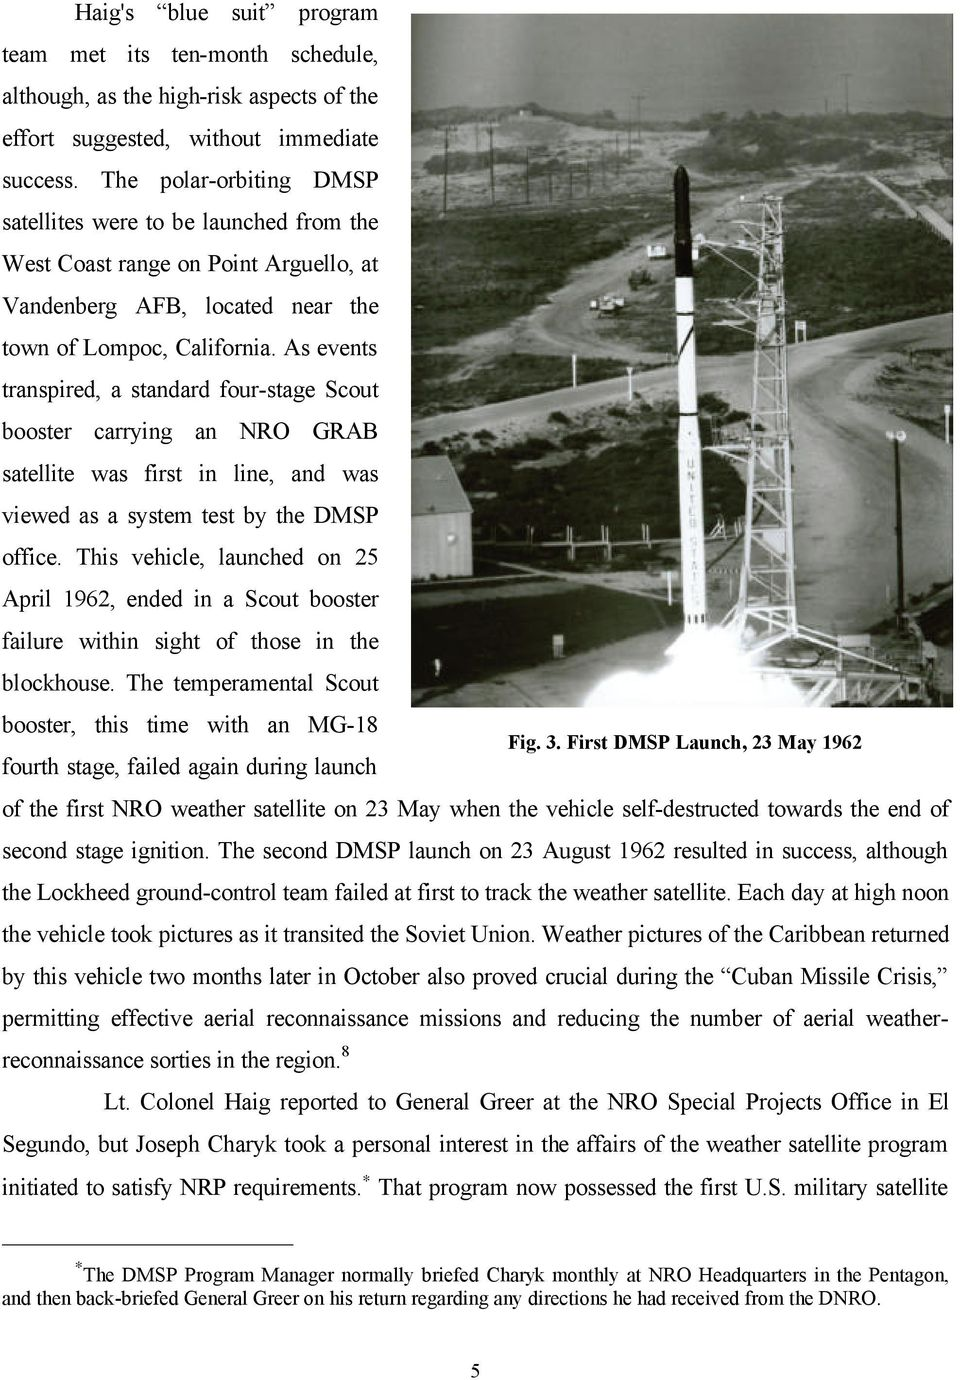 As events transpired, a standard four-stage Scout booster carrying an NRO GRAB satellite was first in line, and was viewed as a system test by the office.